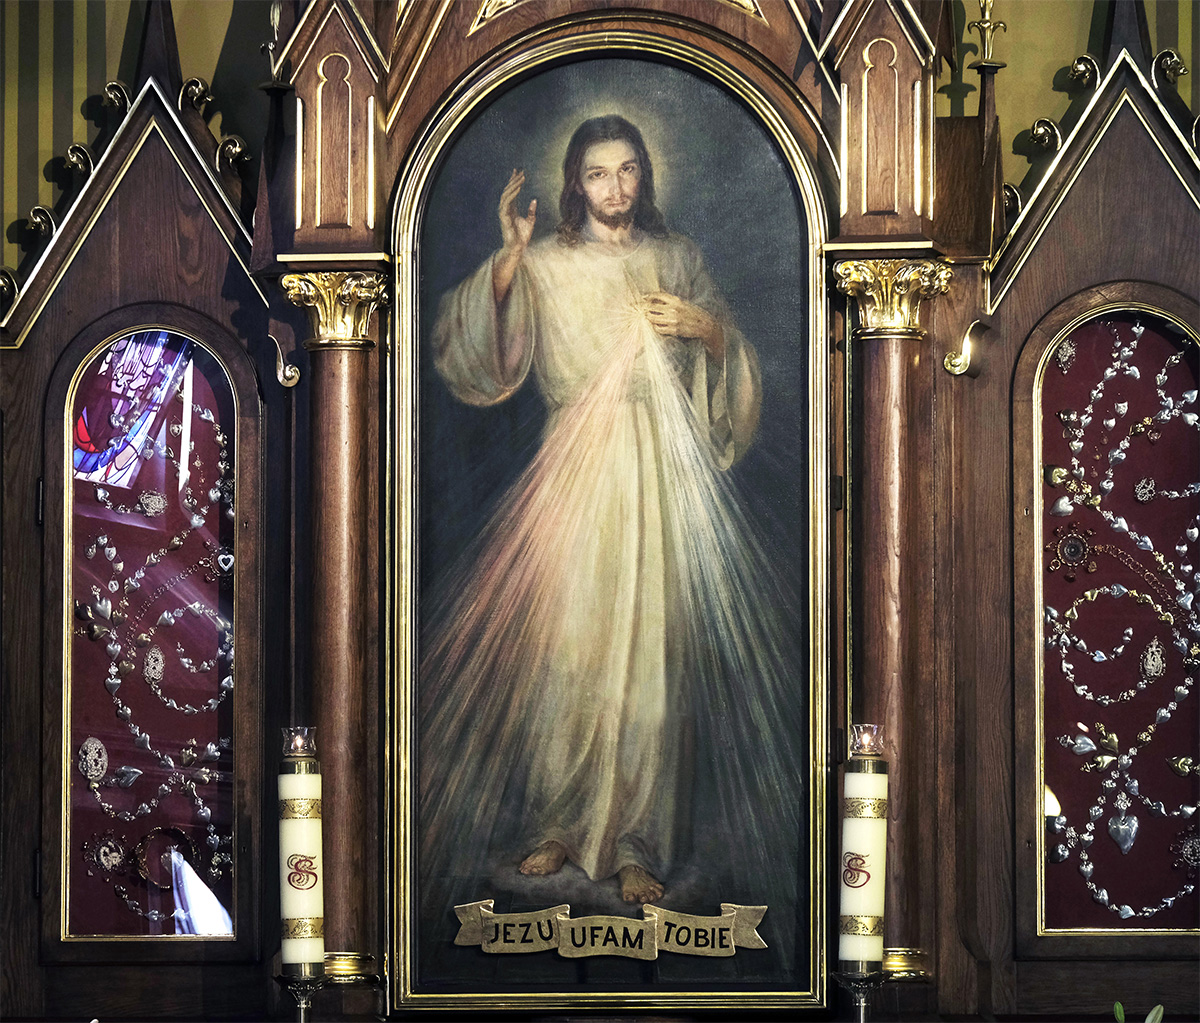 A photo of the Sacred Heart of Jesus